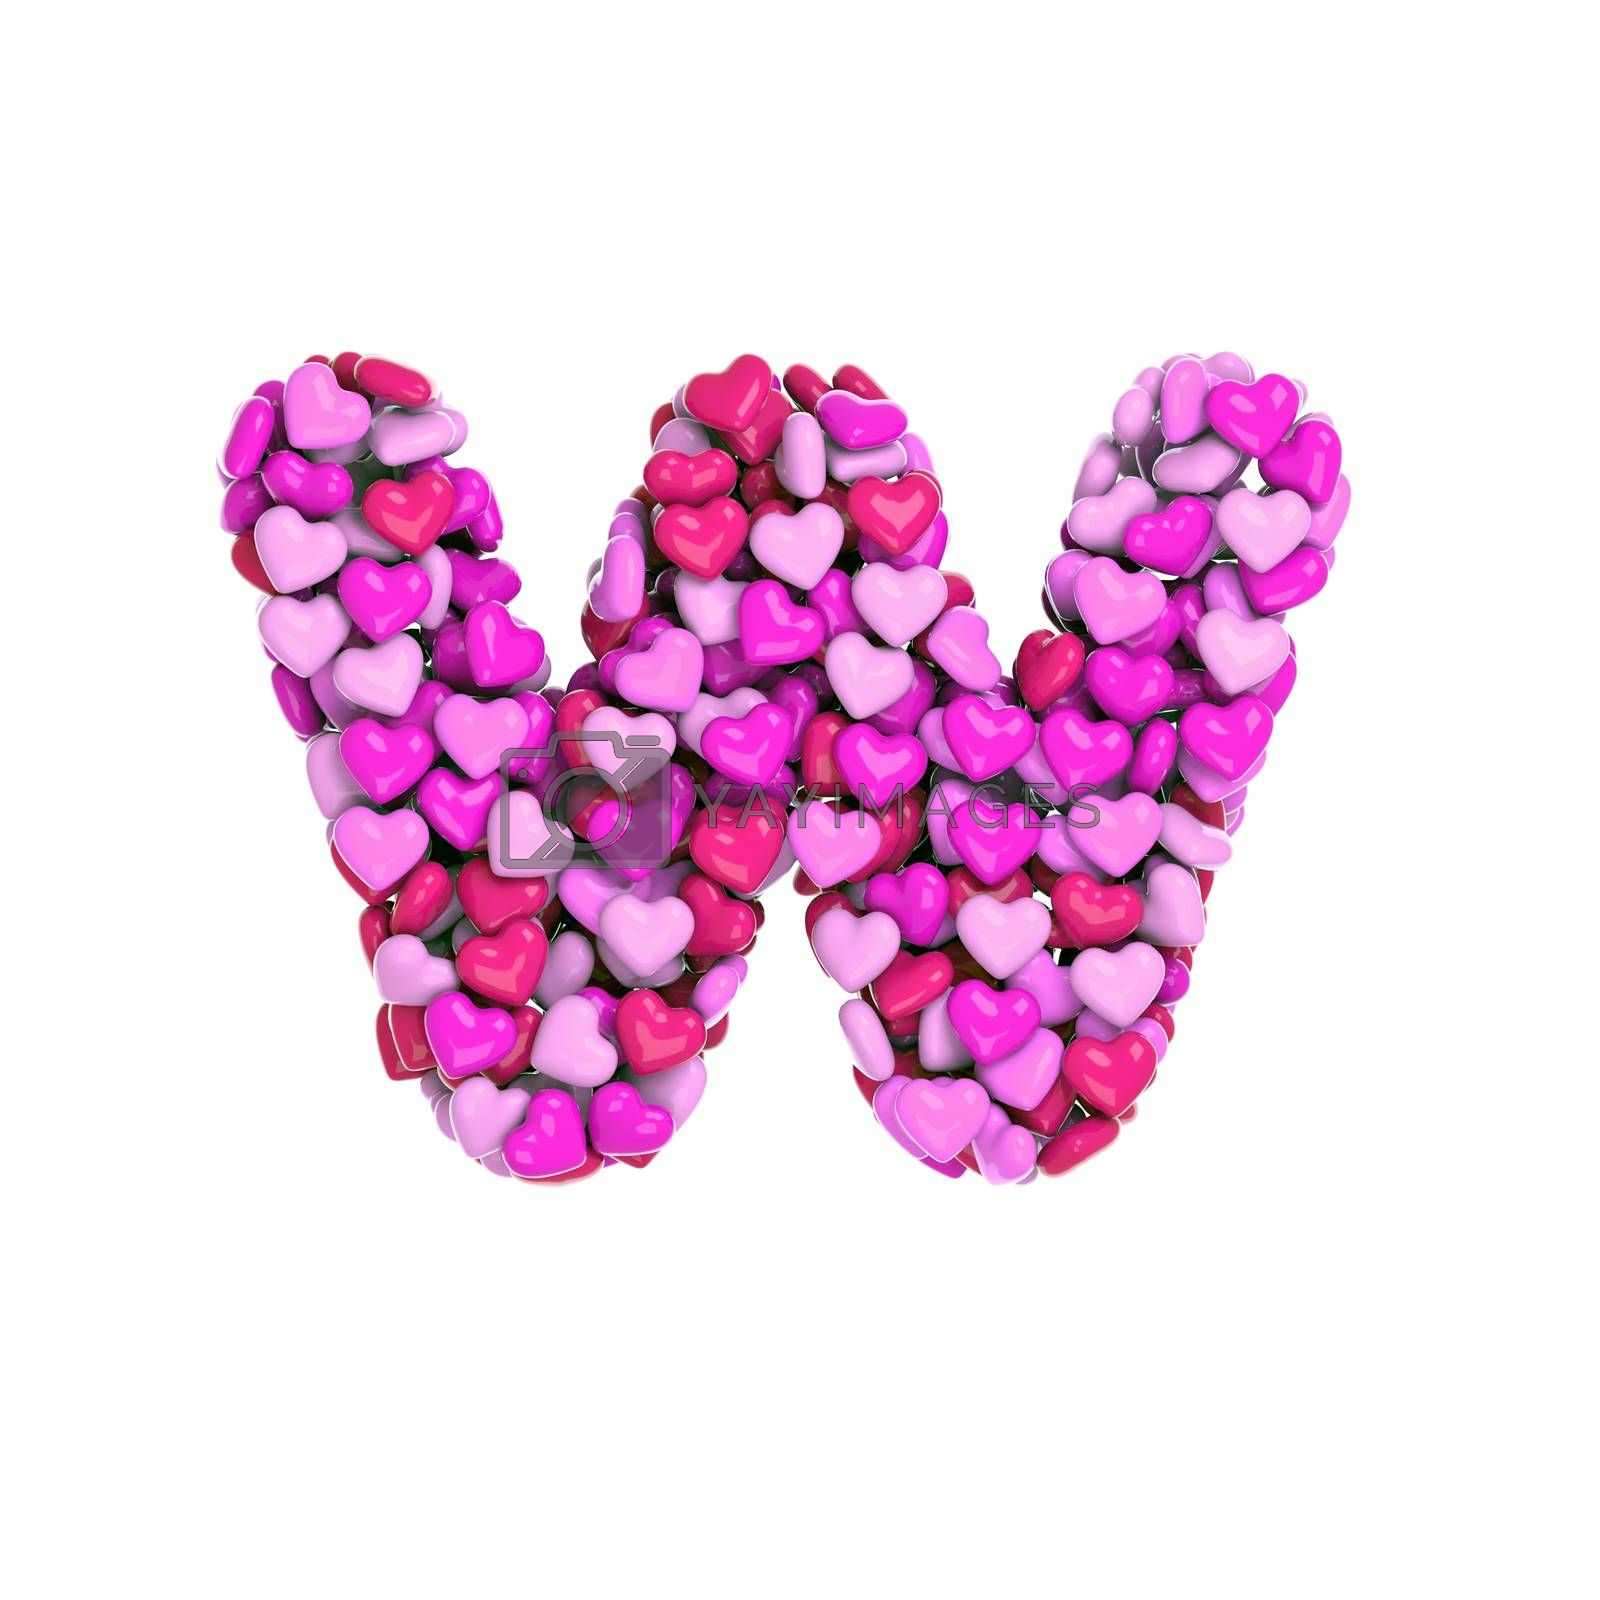 Valentine letter W - Lower-case 3d pink hearts font - Love, passion or wedding concept by chrisroll